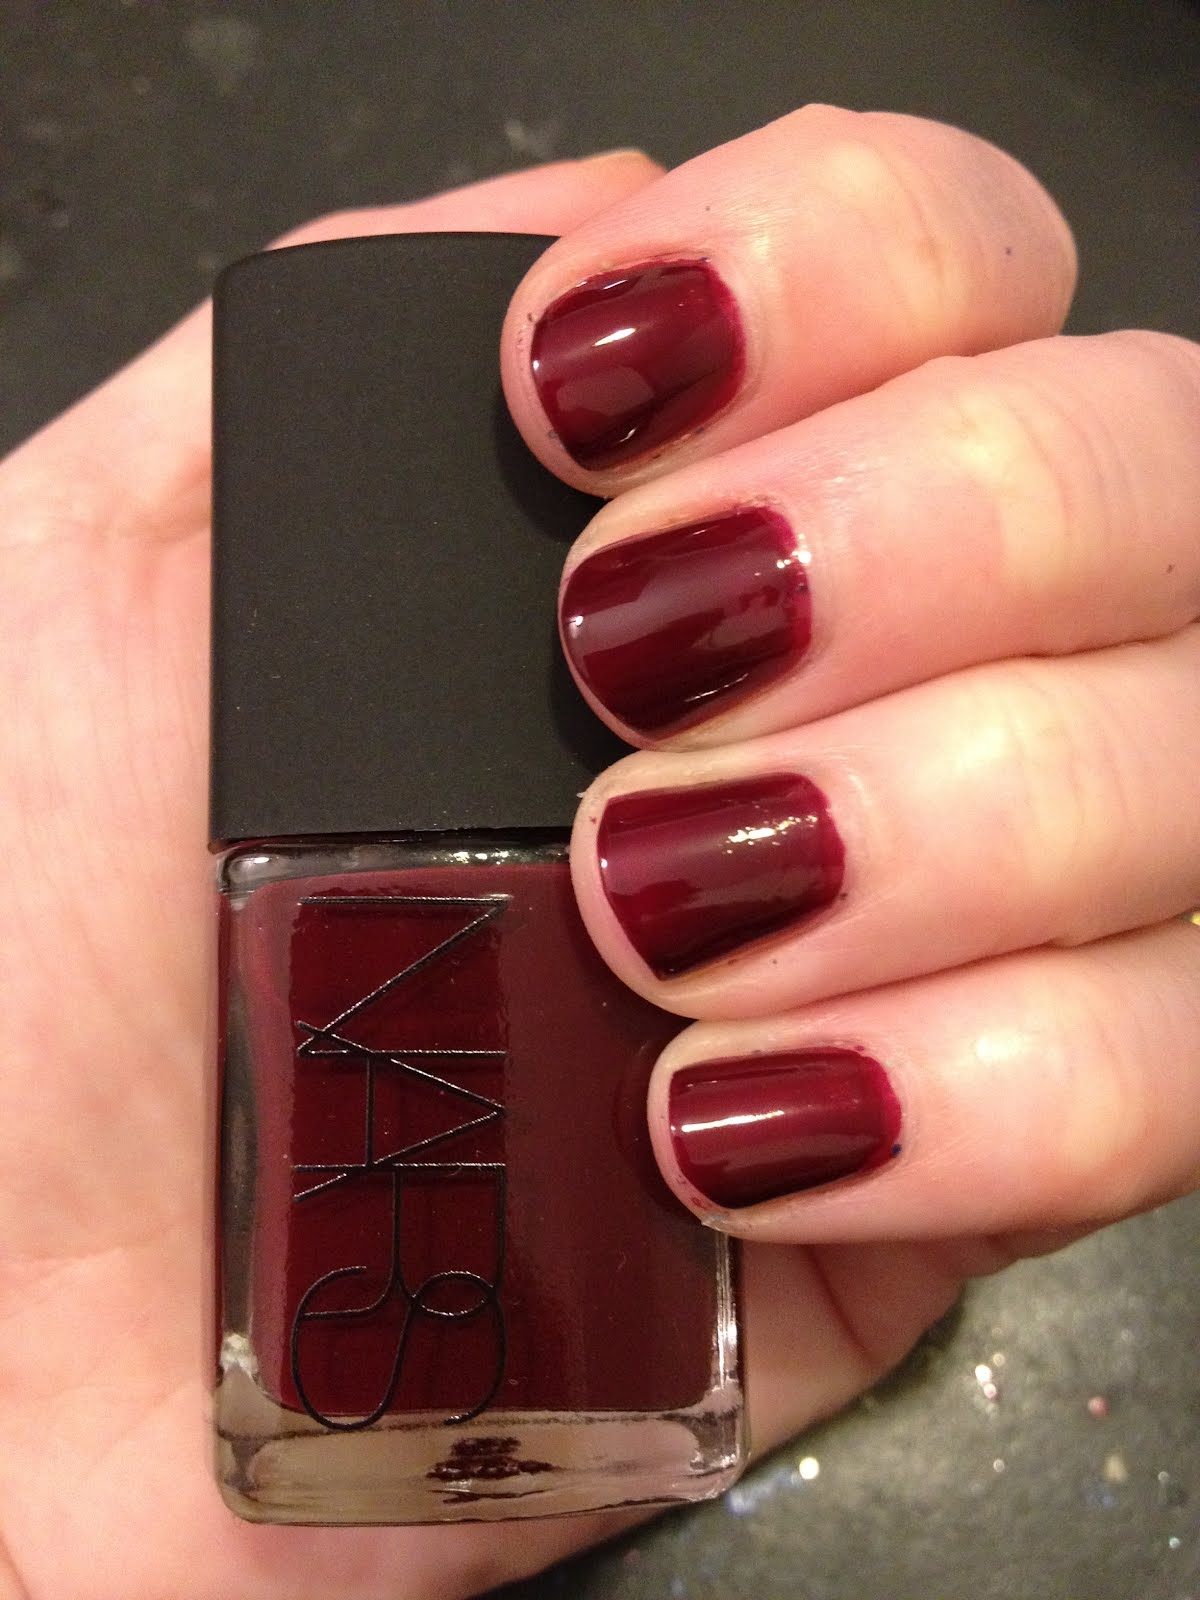 The Beauty of Life: NARS Nail Polish Swatches: My Top 3 Picks!